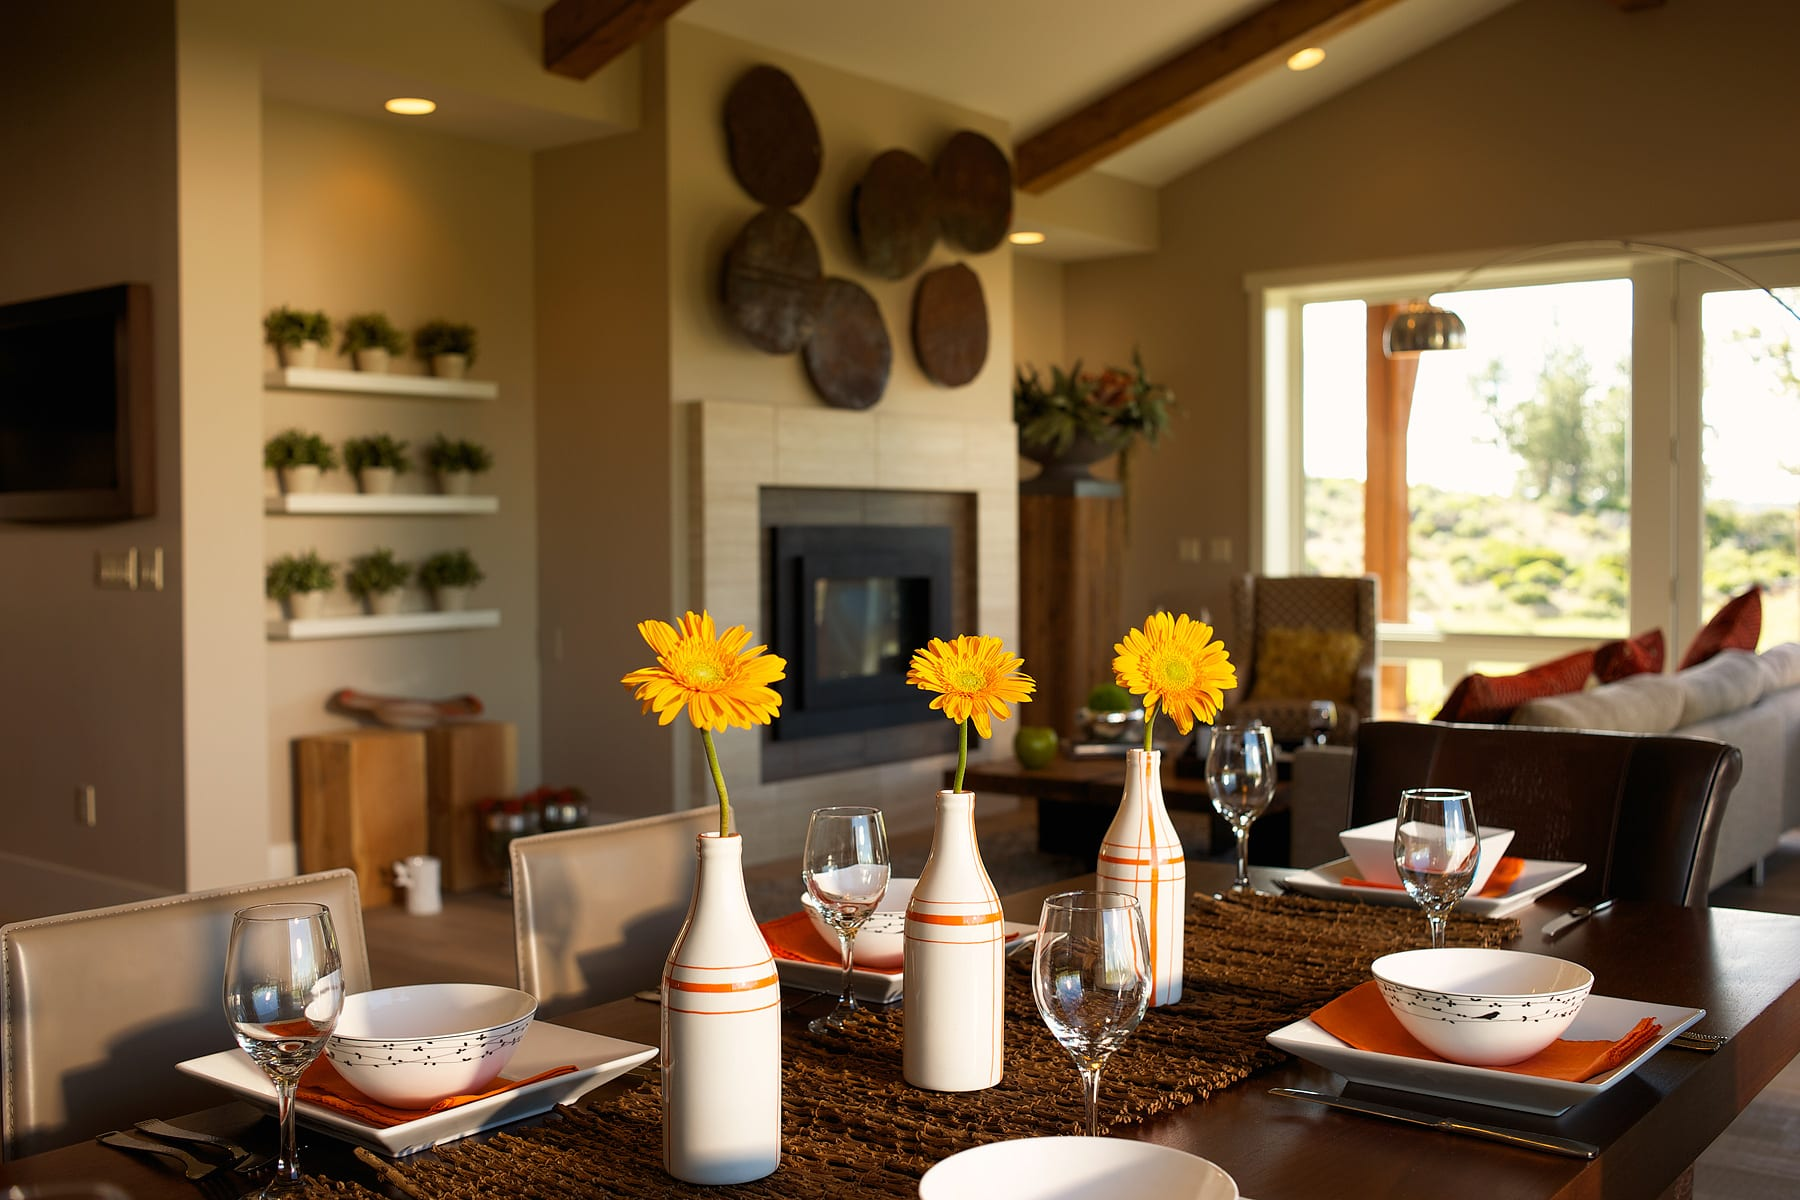 Home project chris 39 year 1 photography - House interior photography ...